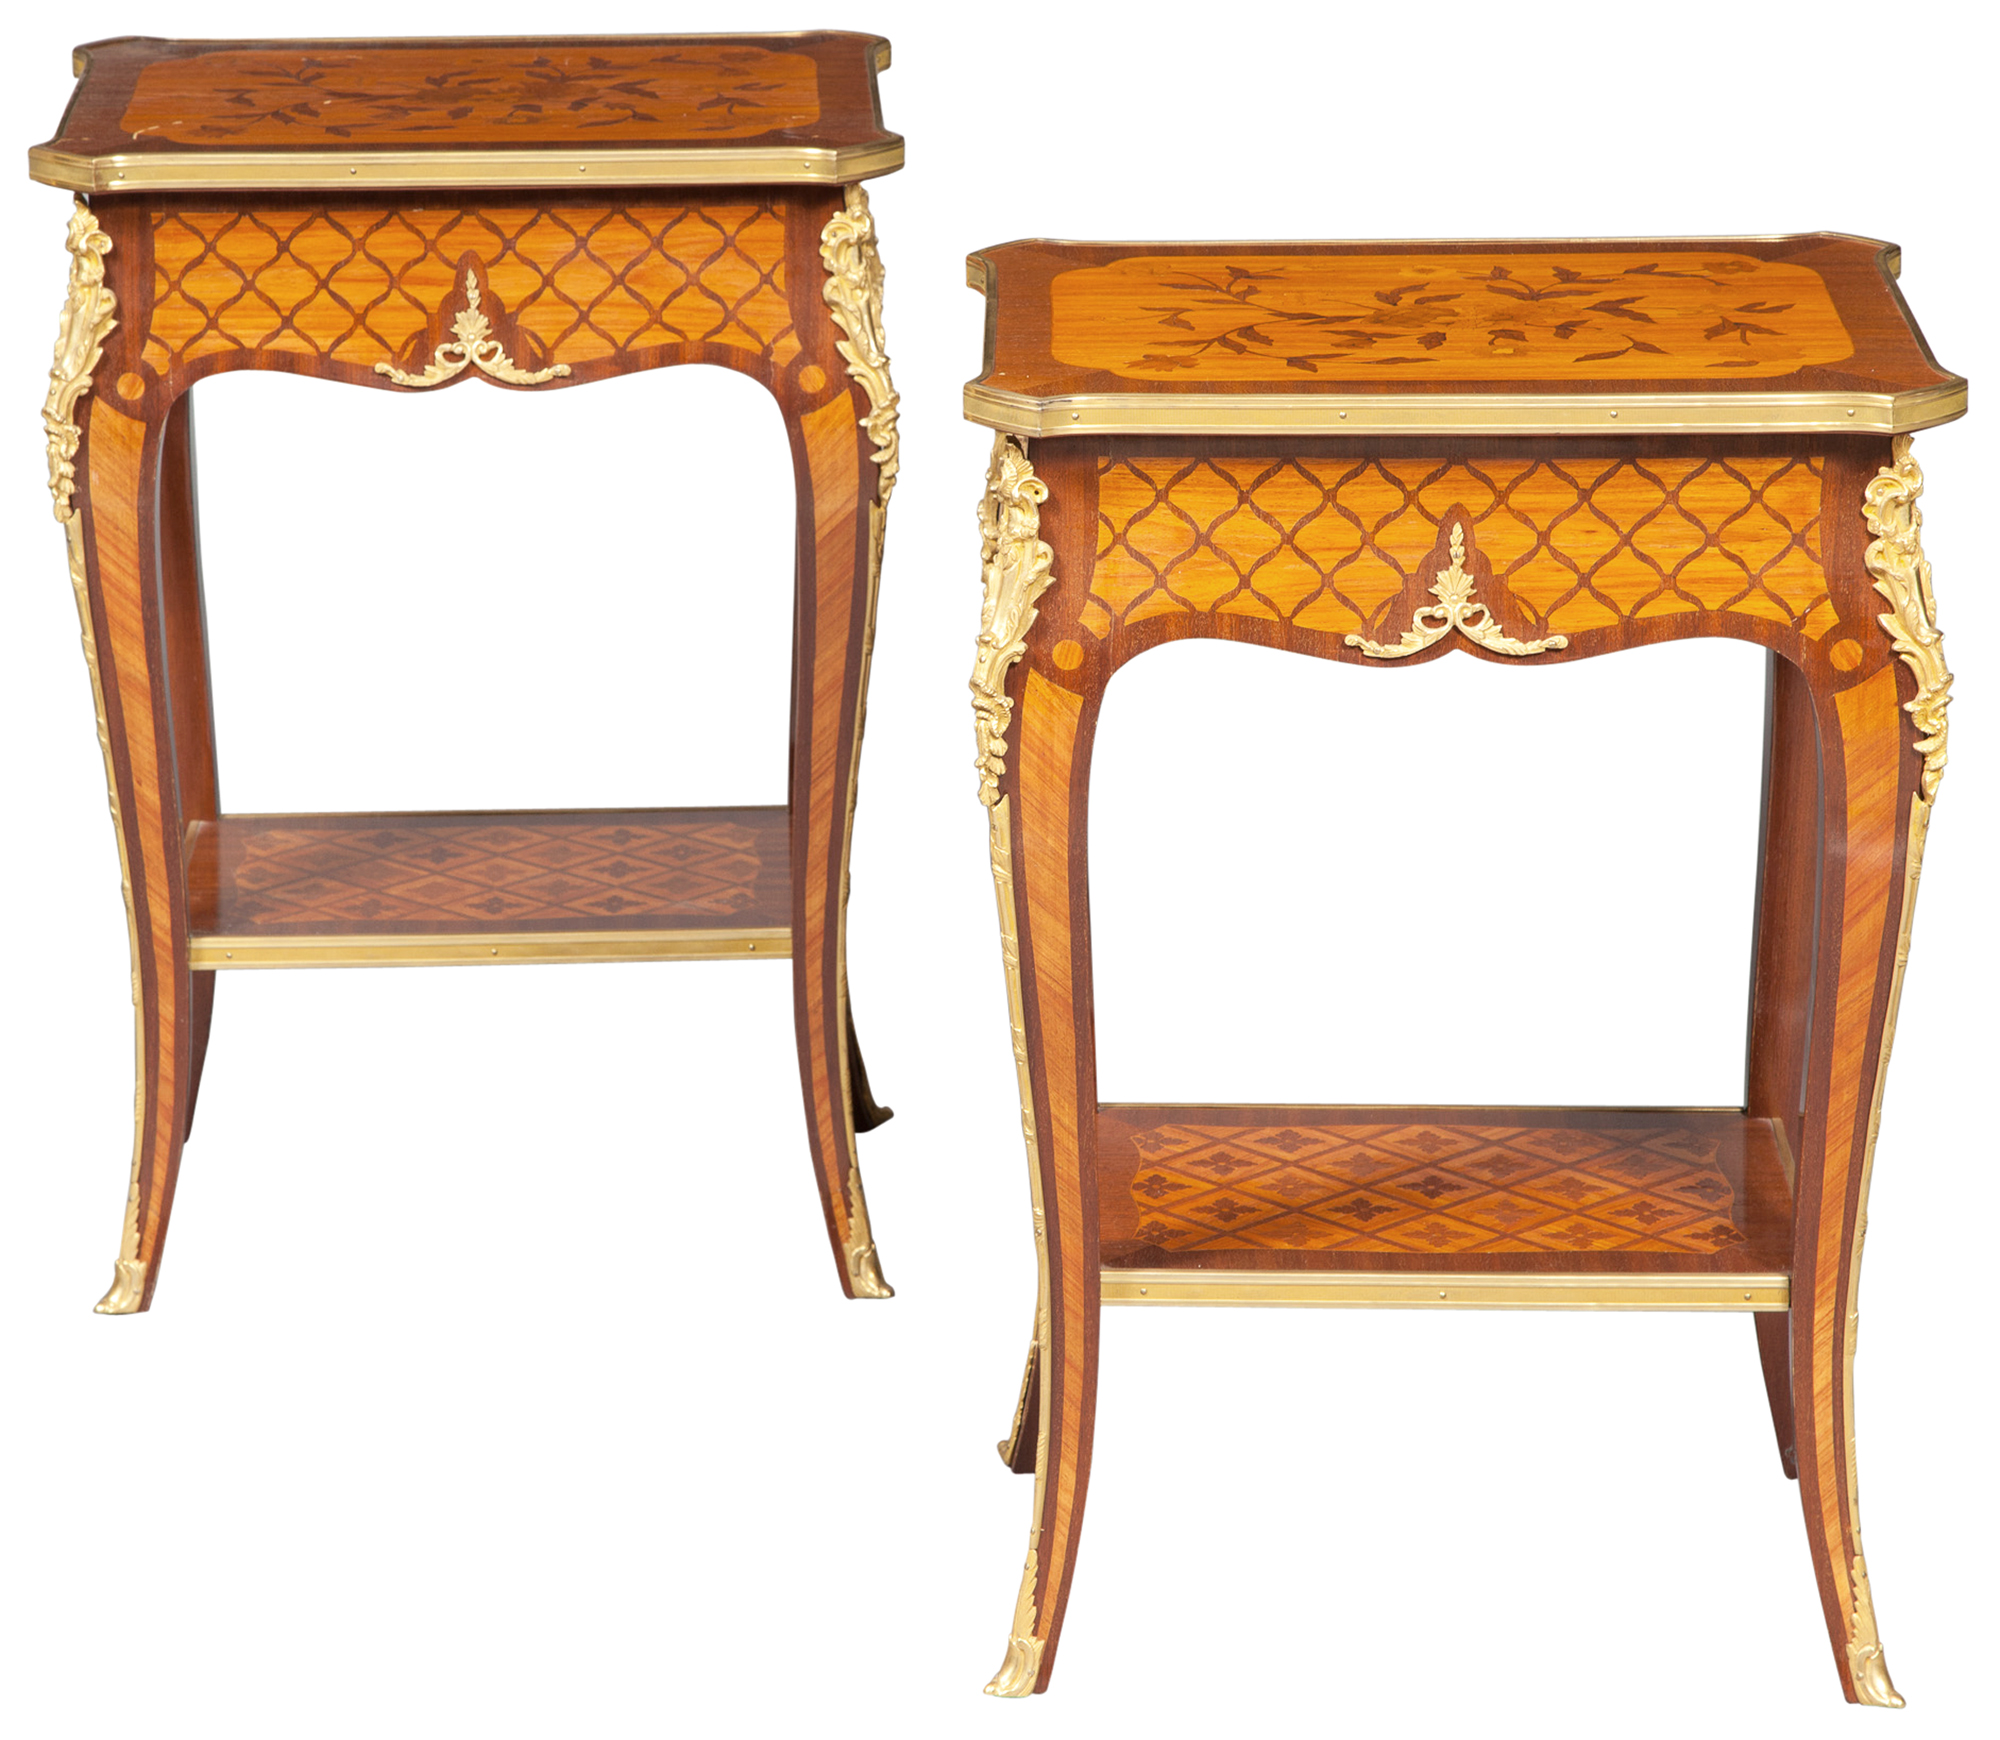 Lot image - Pair of Louis XV Style Gilt-Metal Mounted Kingwood Marquetry and Parquetry Inlaid Side Tables